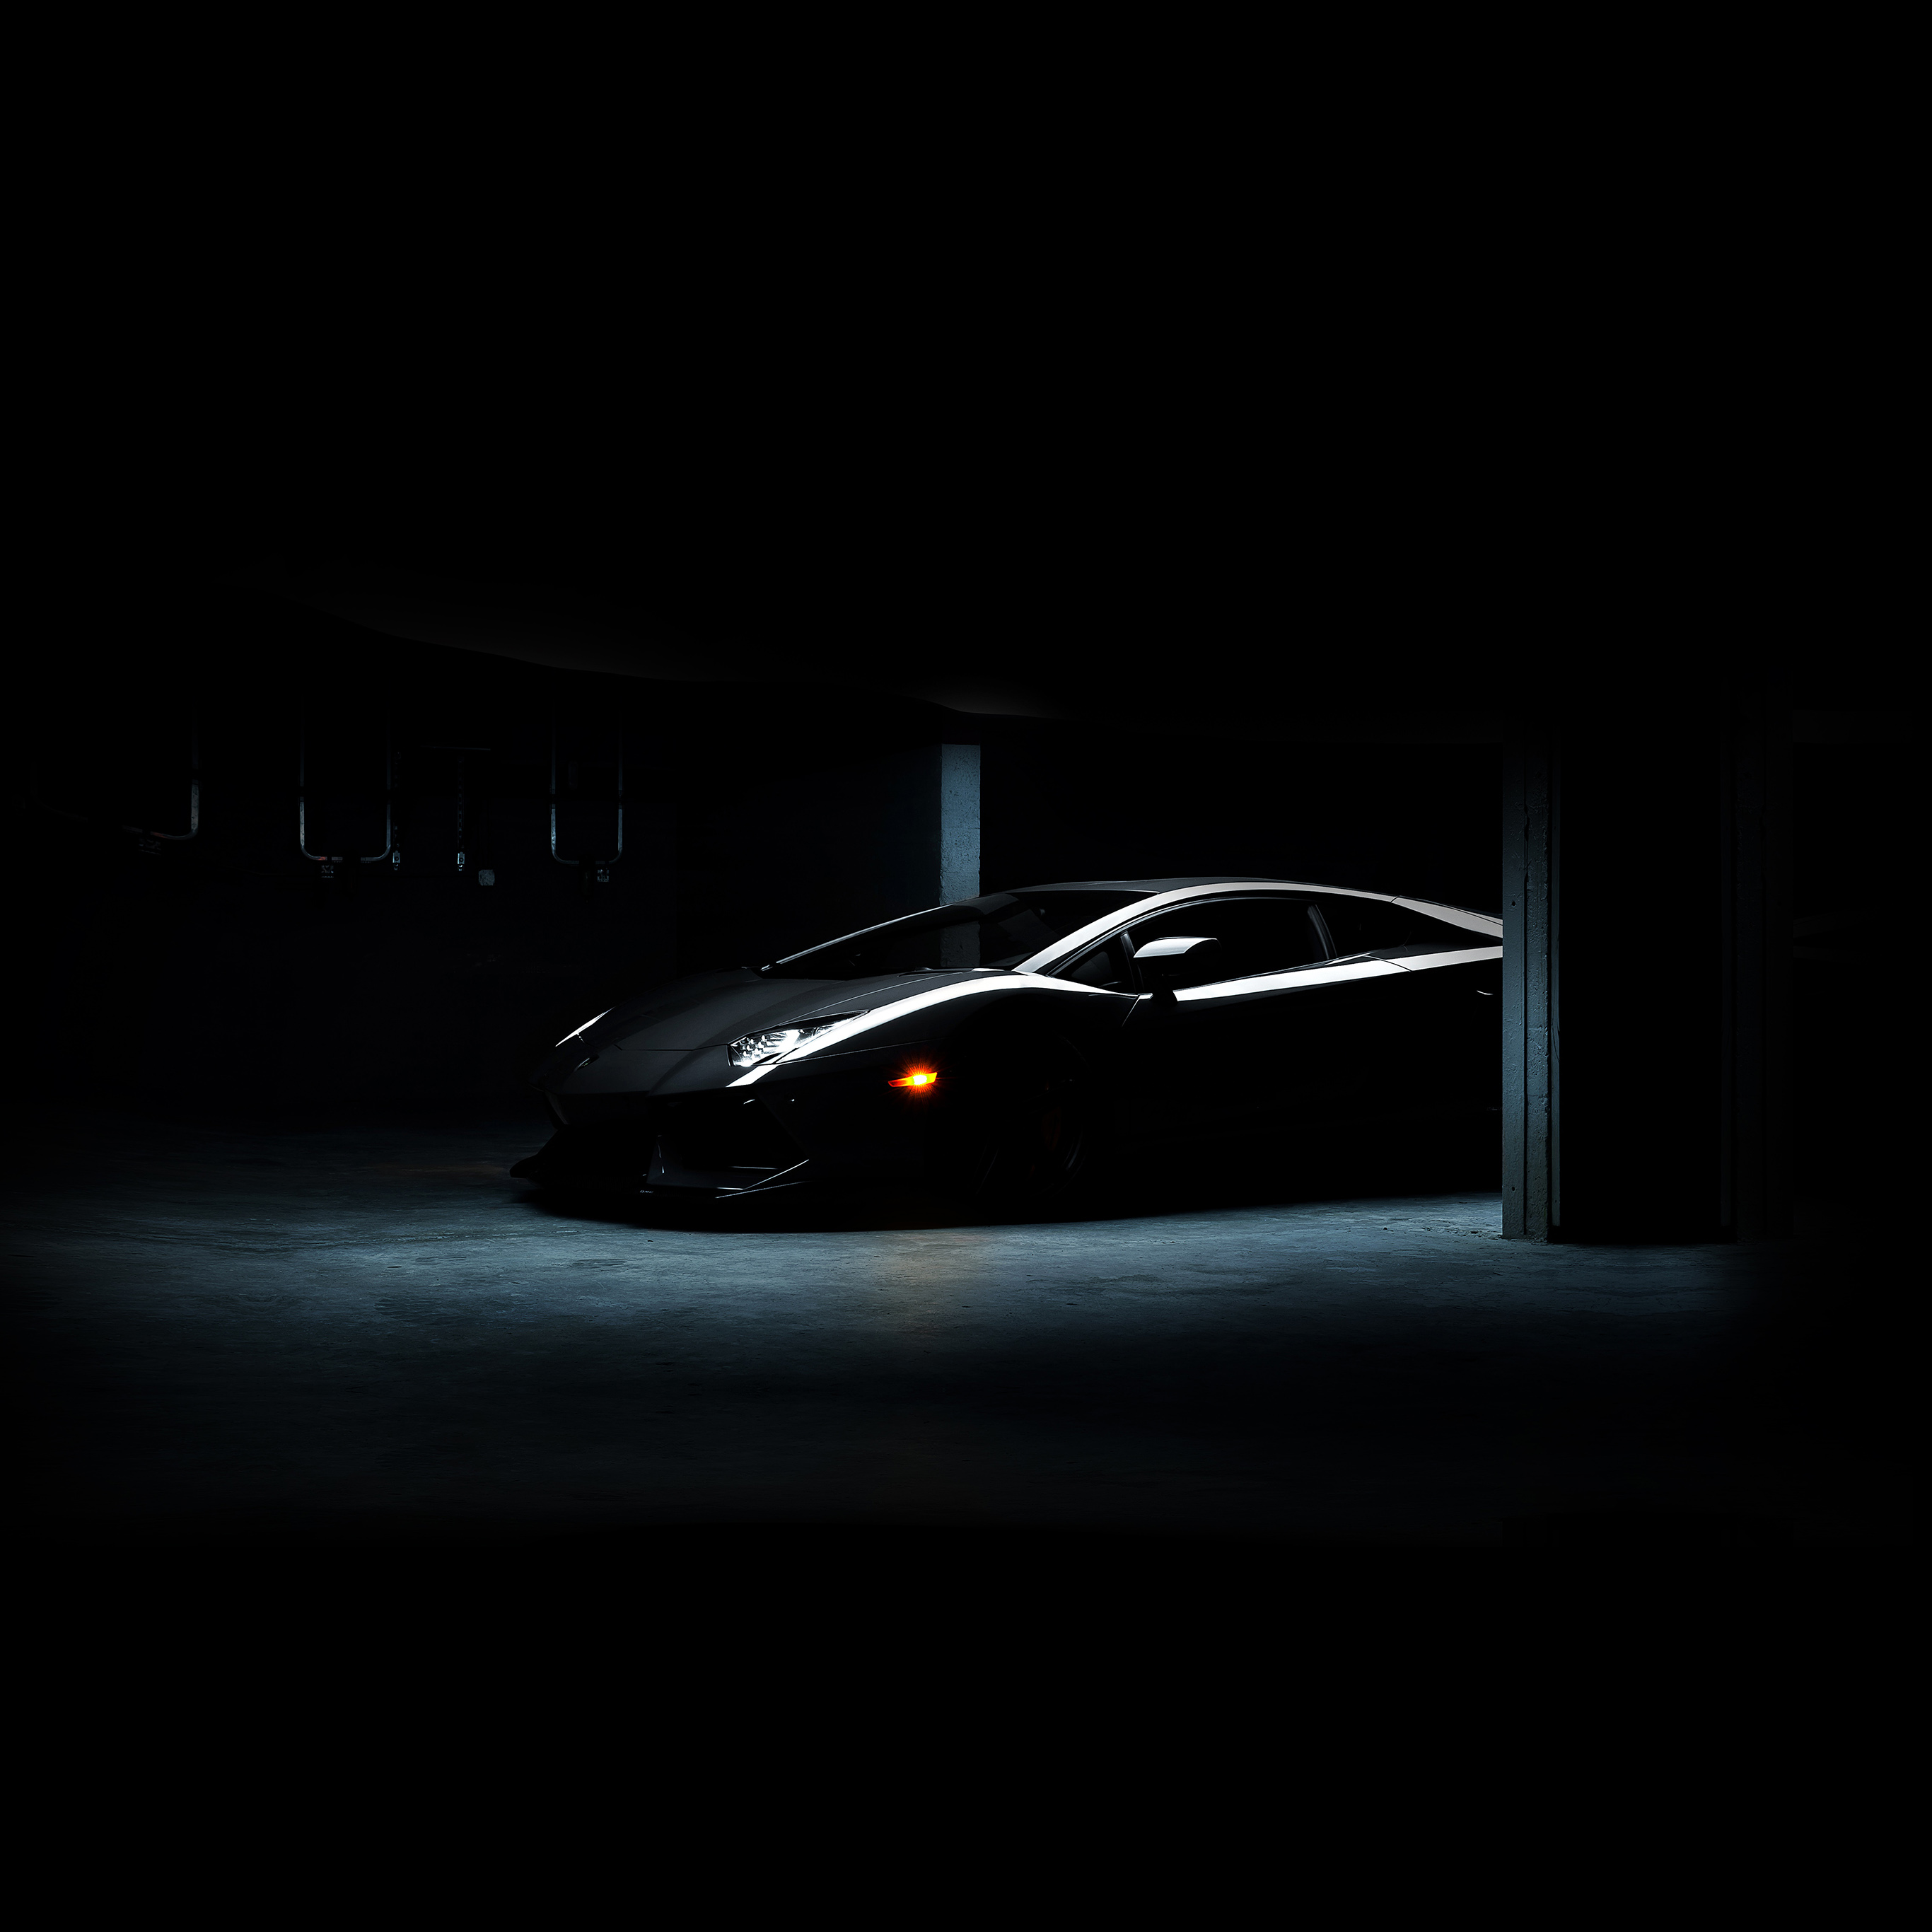 72 Black Lamborghini Wallpaper On Wallpapersafari